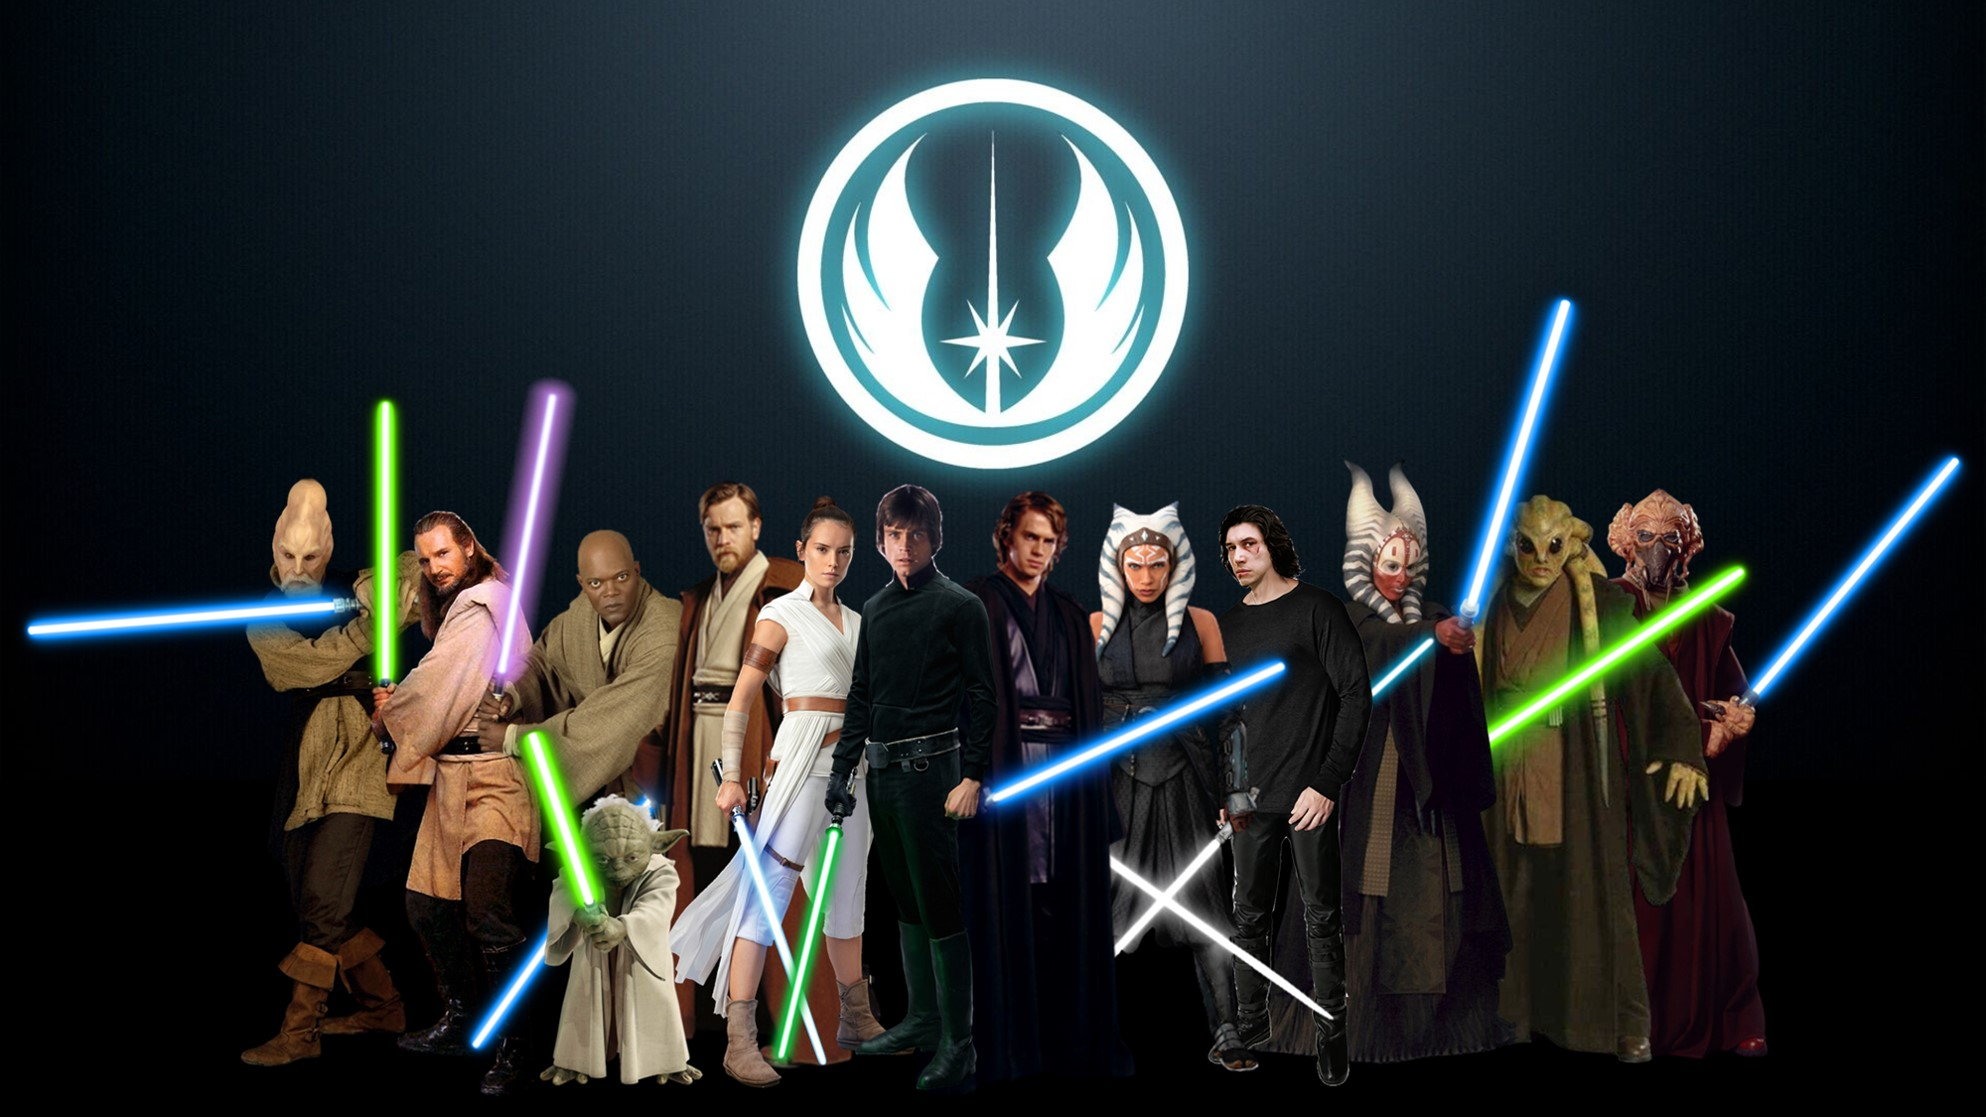 Jedi Wallpaper I made using various official and unofficial art 1986x1117